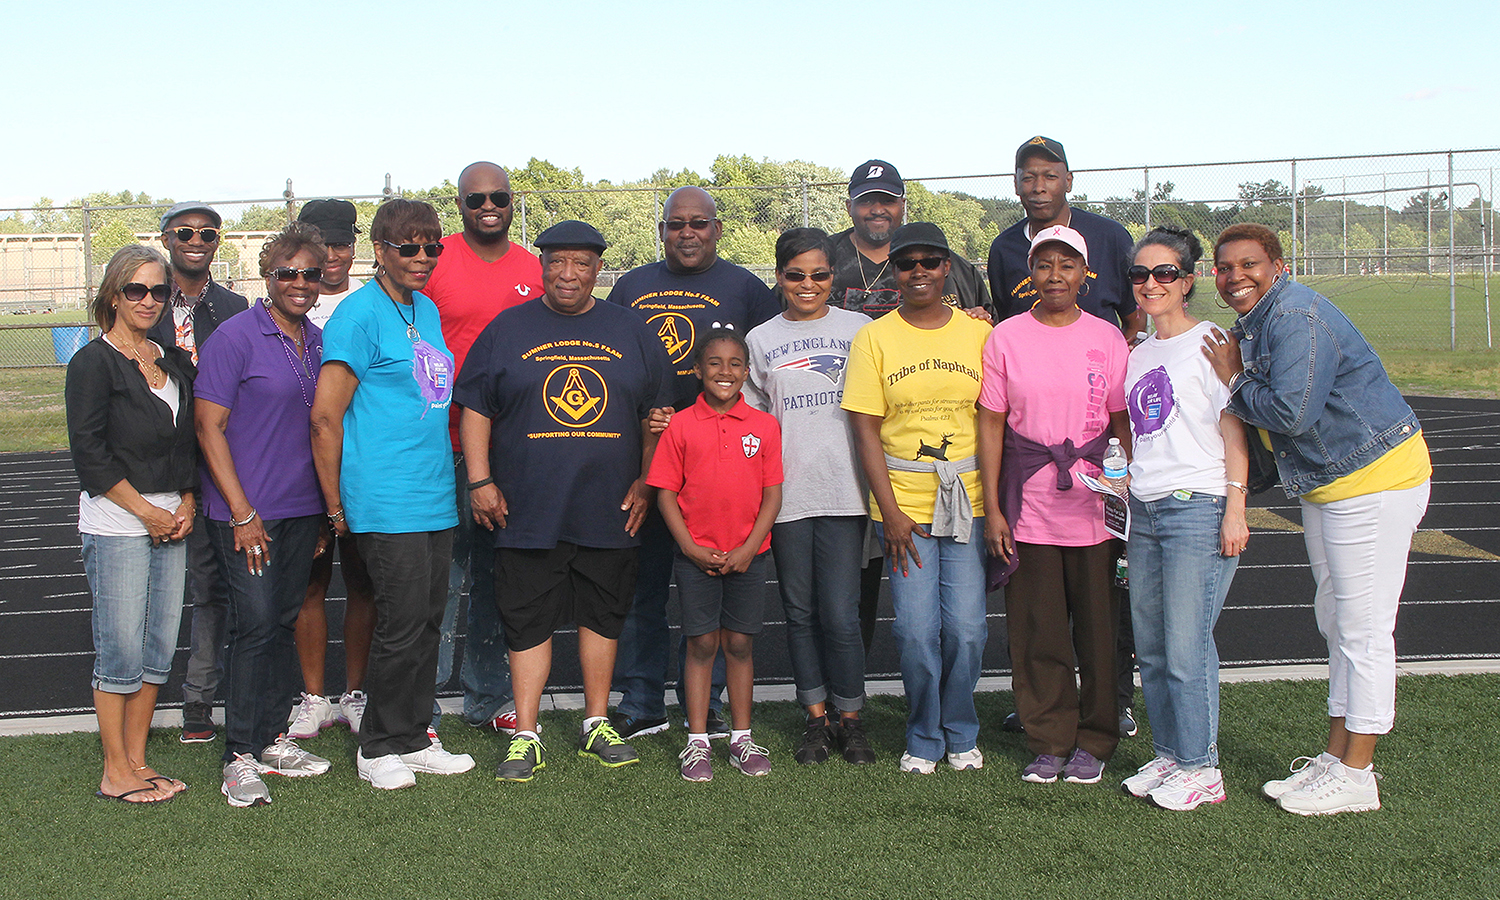 American Cancer Society Relay